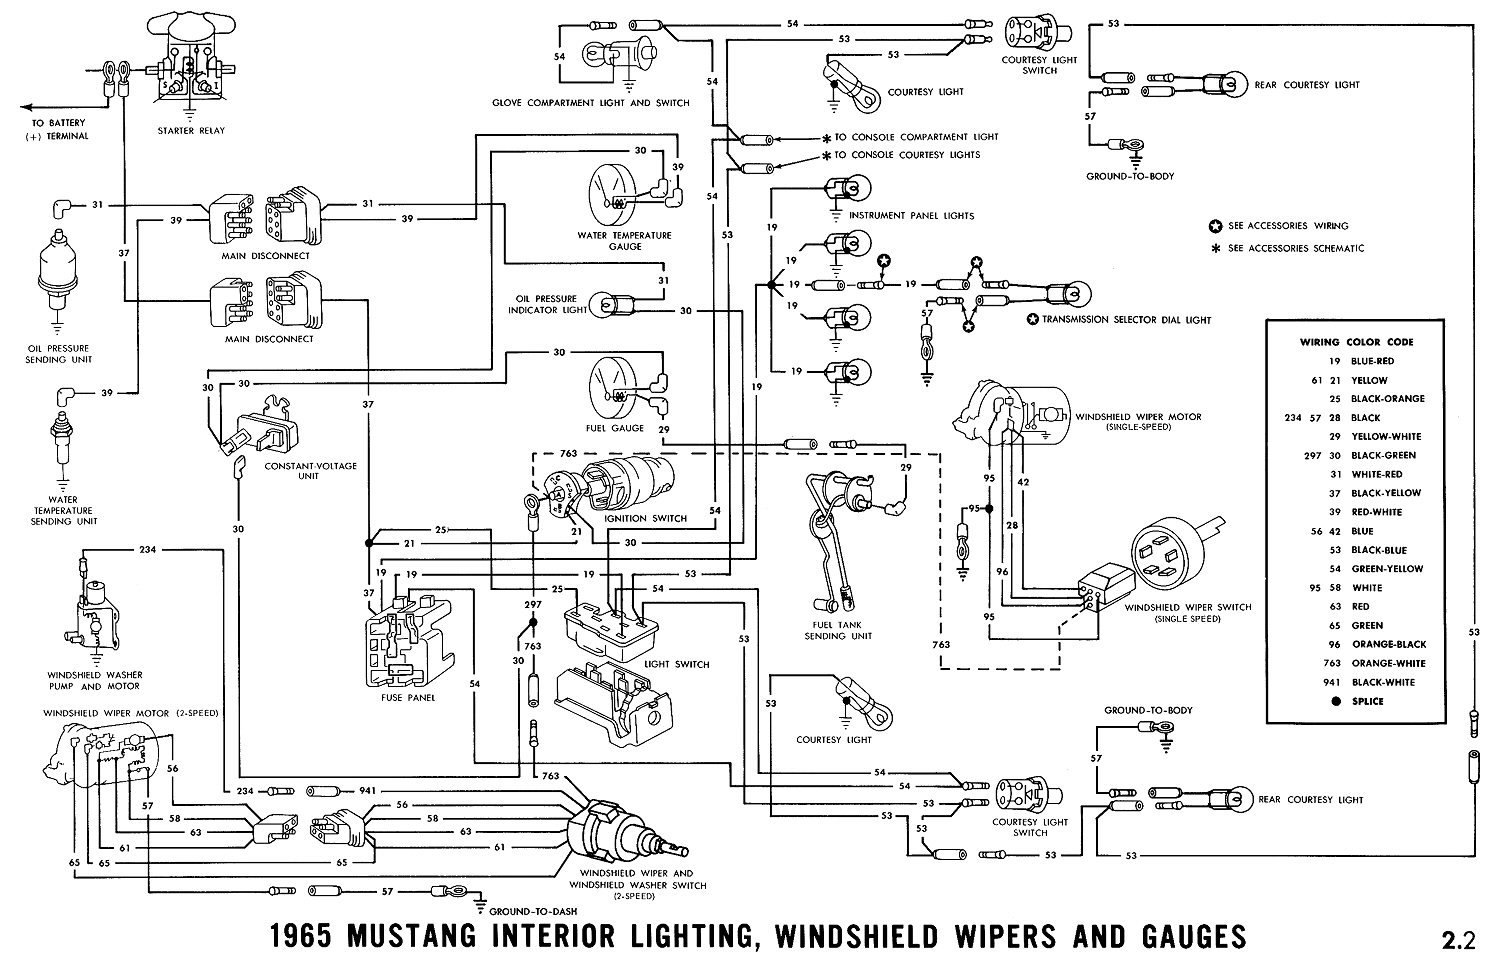 chevelle wiring harness wirdig 1970 chevelle wiring diagram on 1964 vw beetle wiring diagram